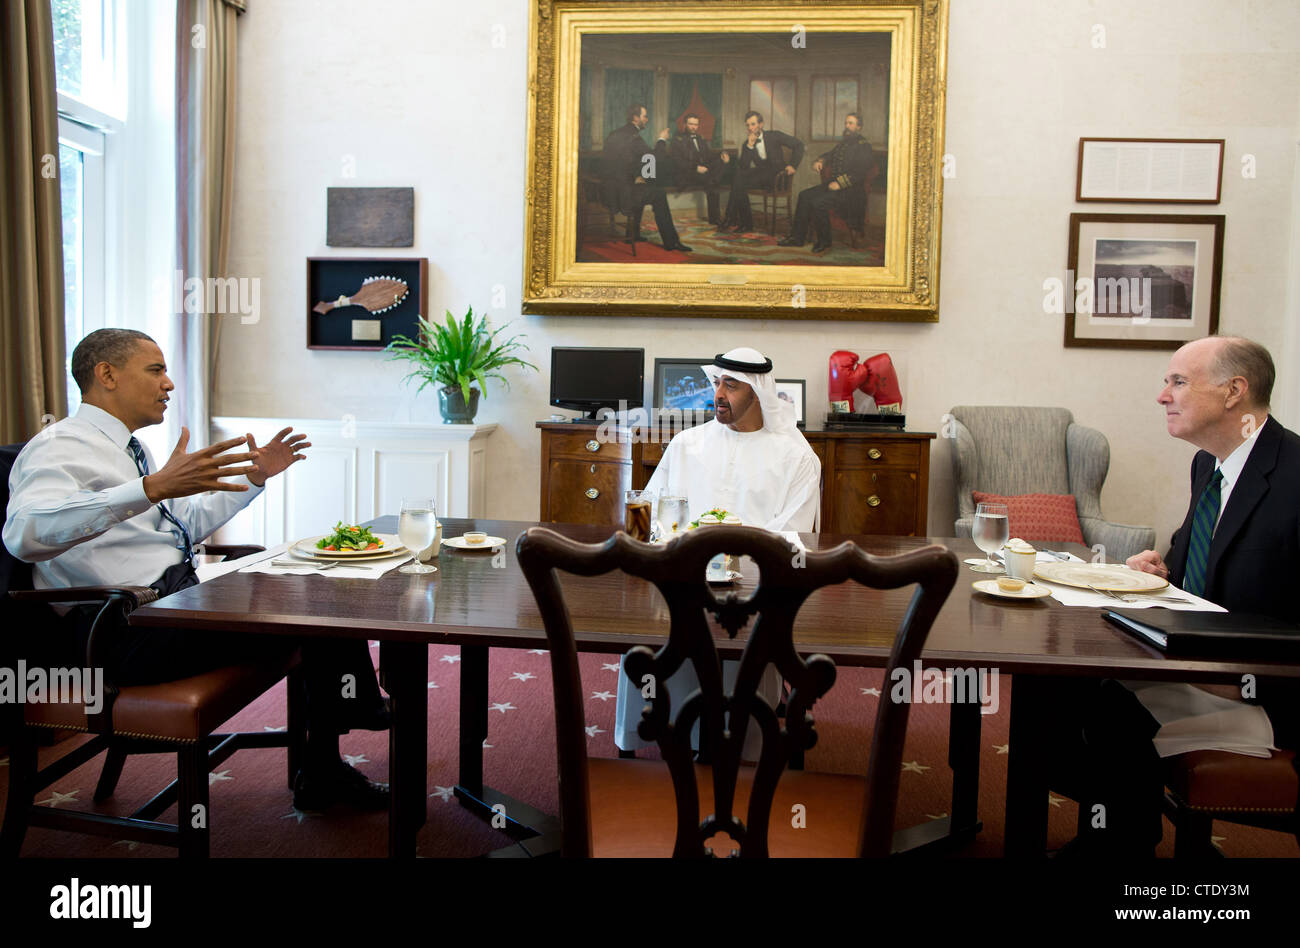 US President Barack Obama has lunch with Abu Dhabi Crown Prince Mohammed bin Zayed Al Nahyan of the United Arab - Stock Image